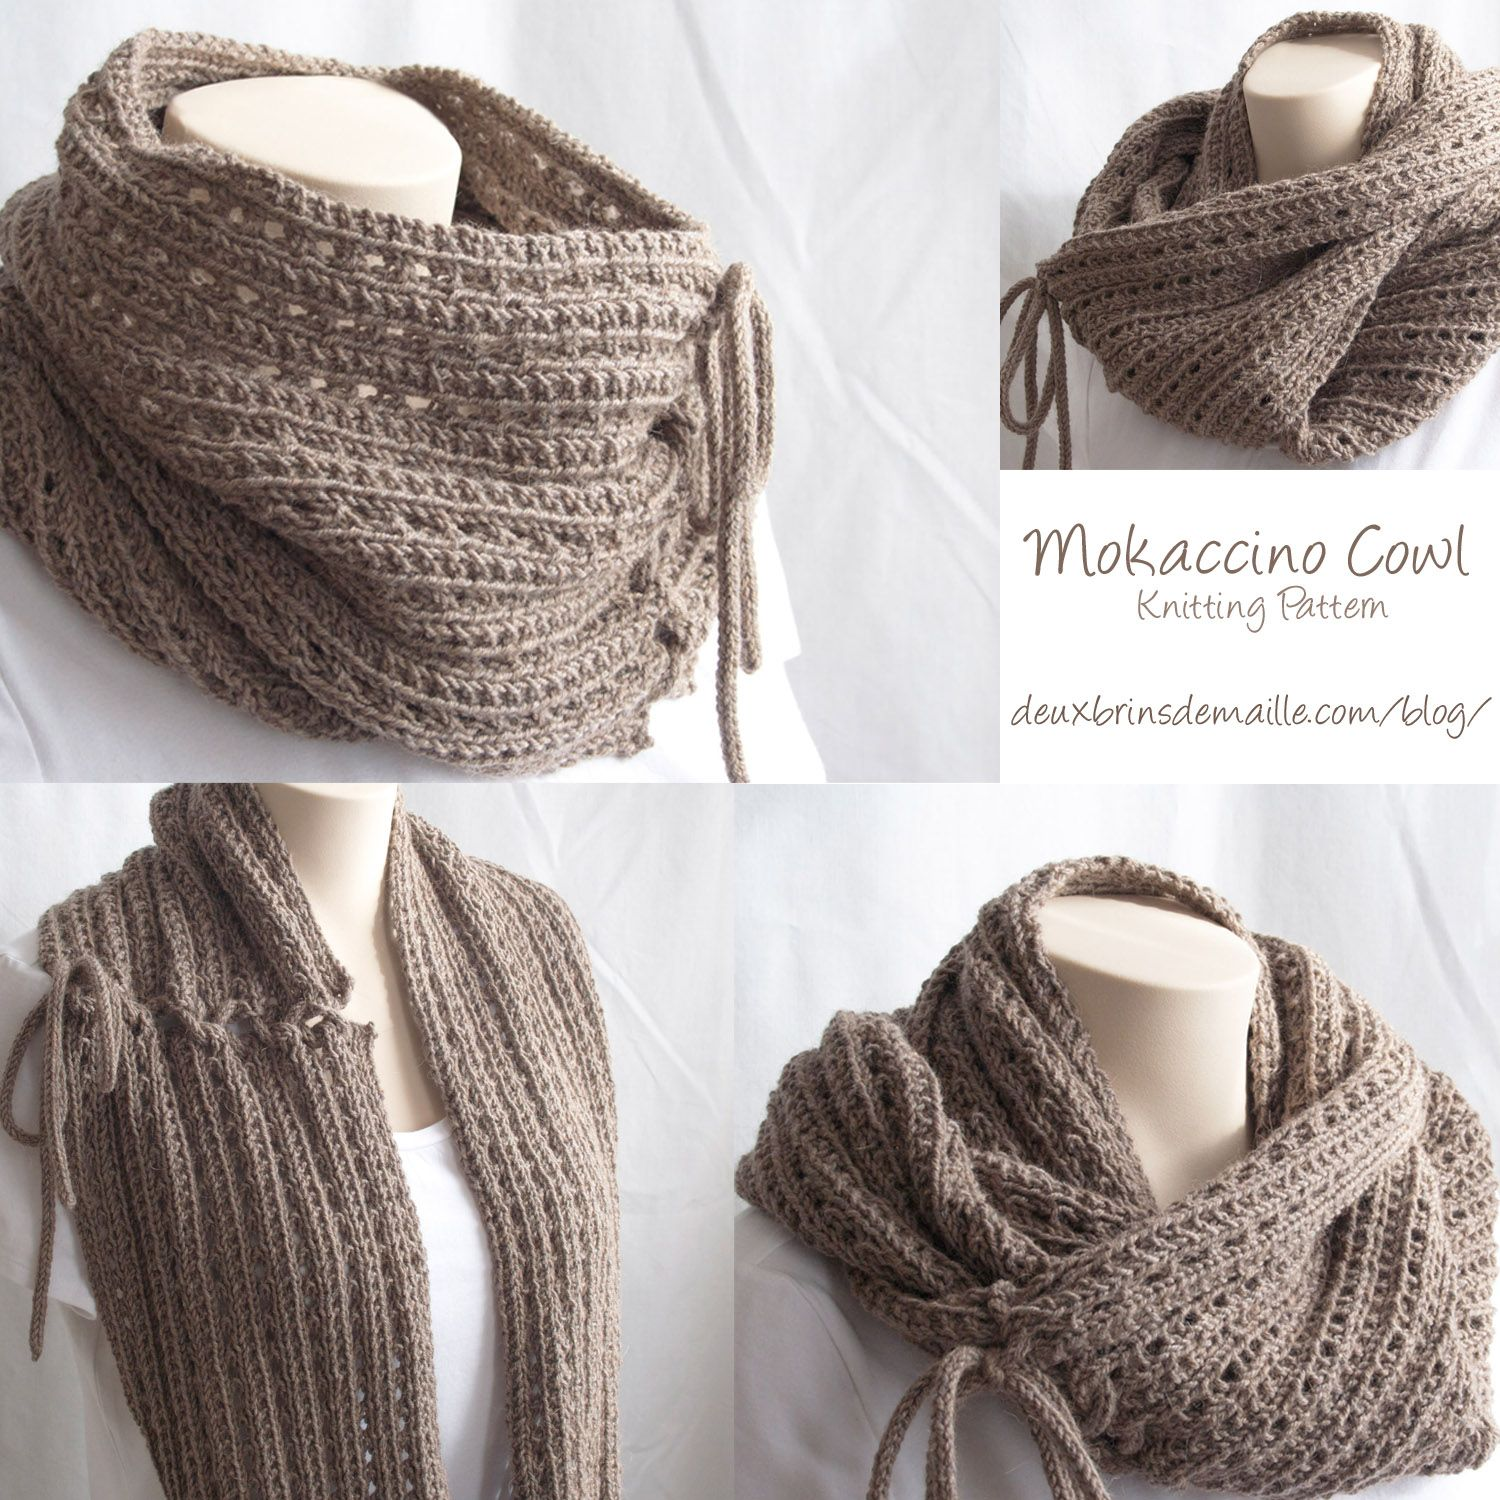 Knitting Pattern : The Mokaccino Cowl | Knit N Purl Cowls ...